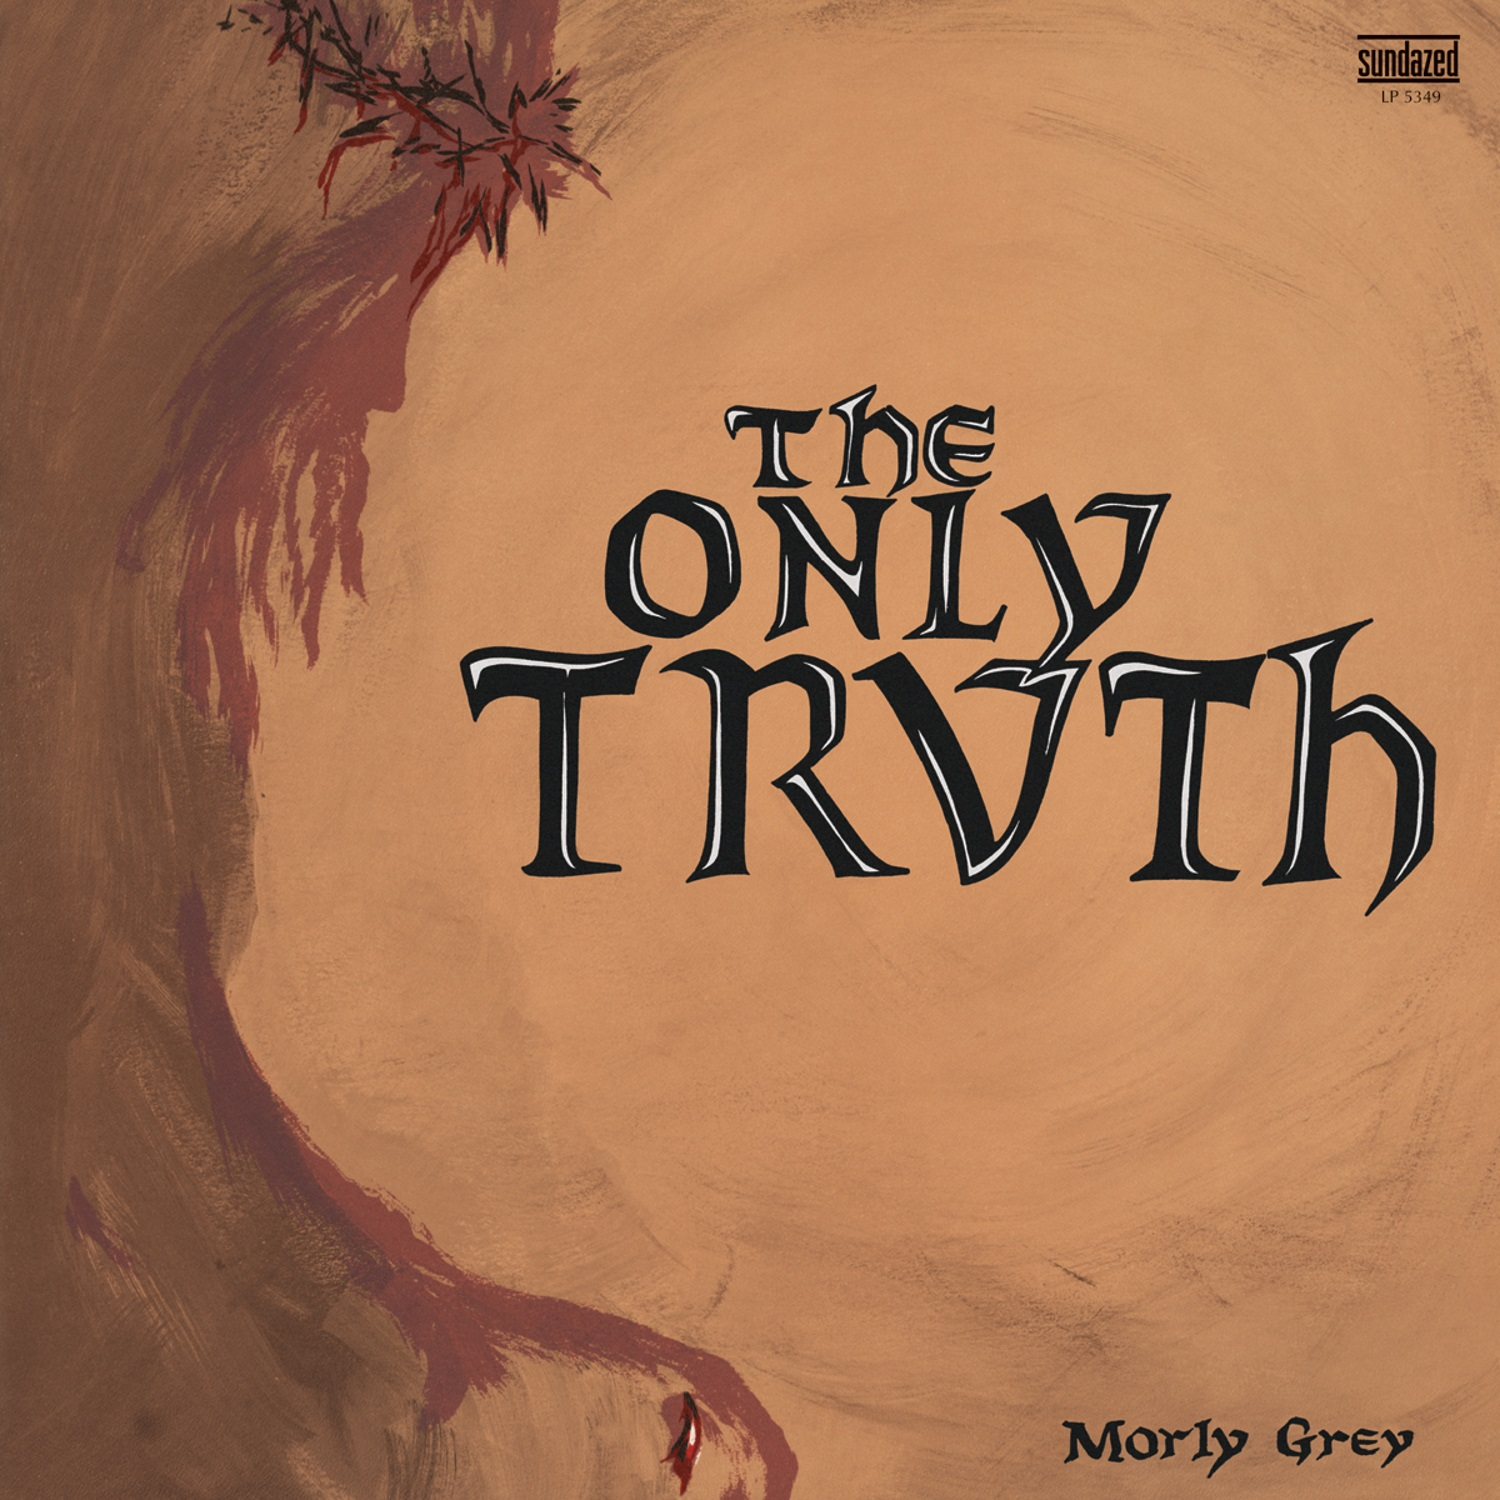 Morly Grey - The Only Truth 2-LP Set